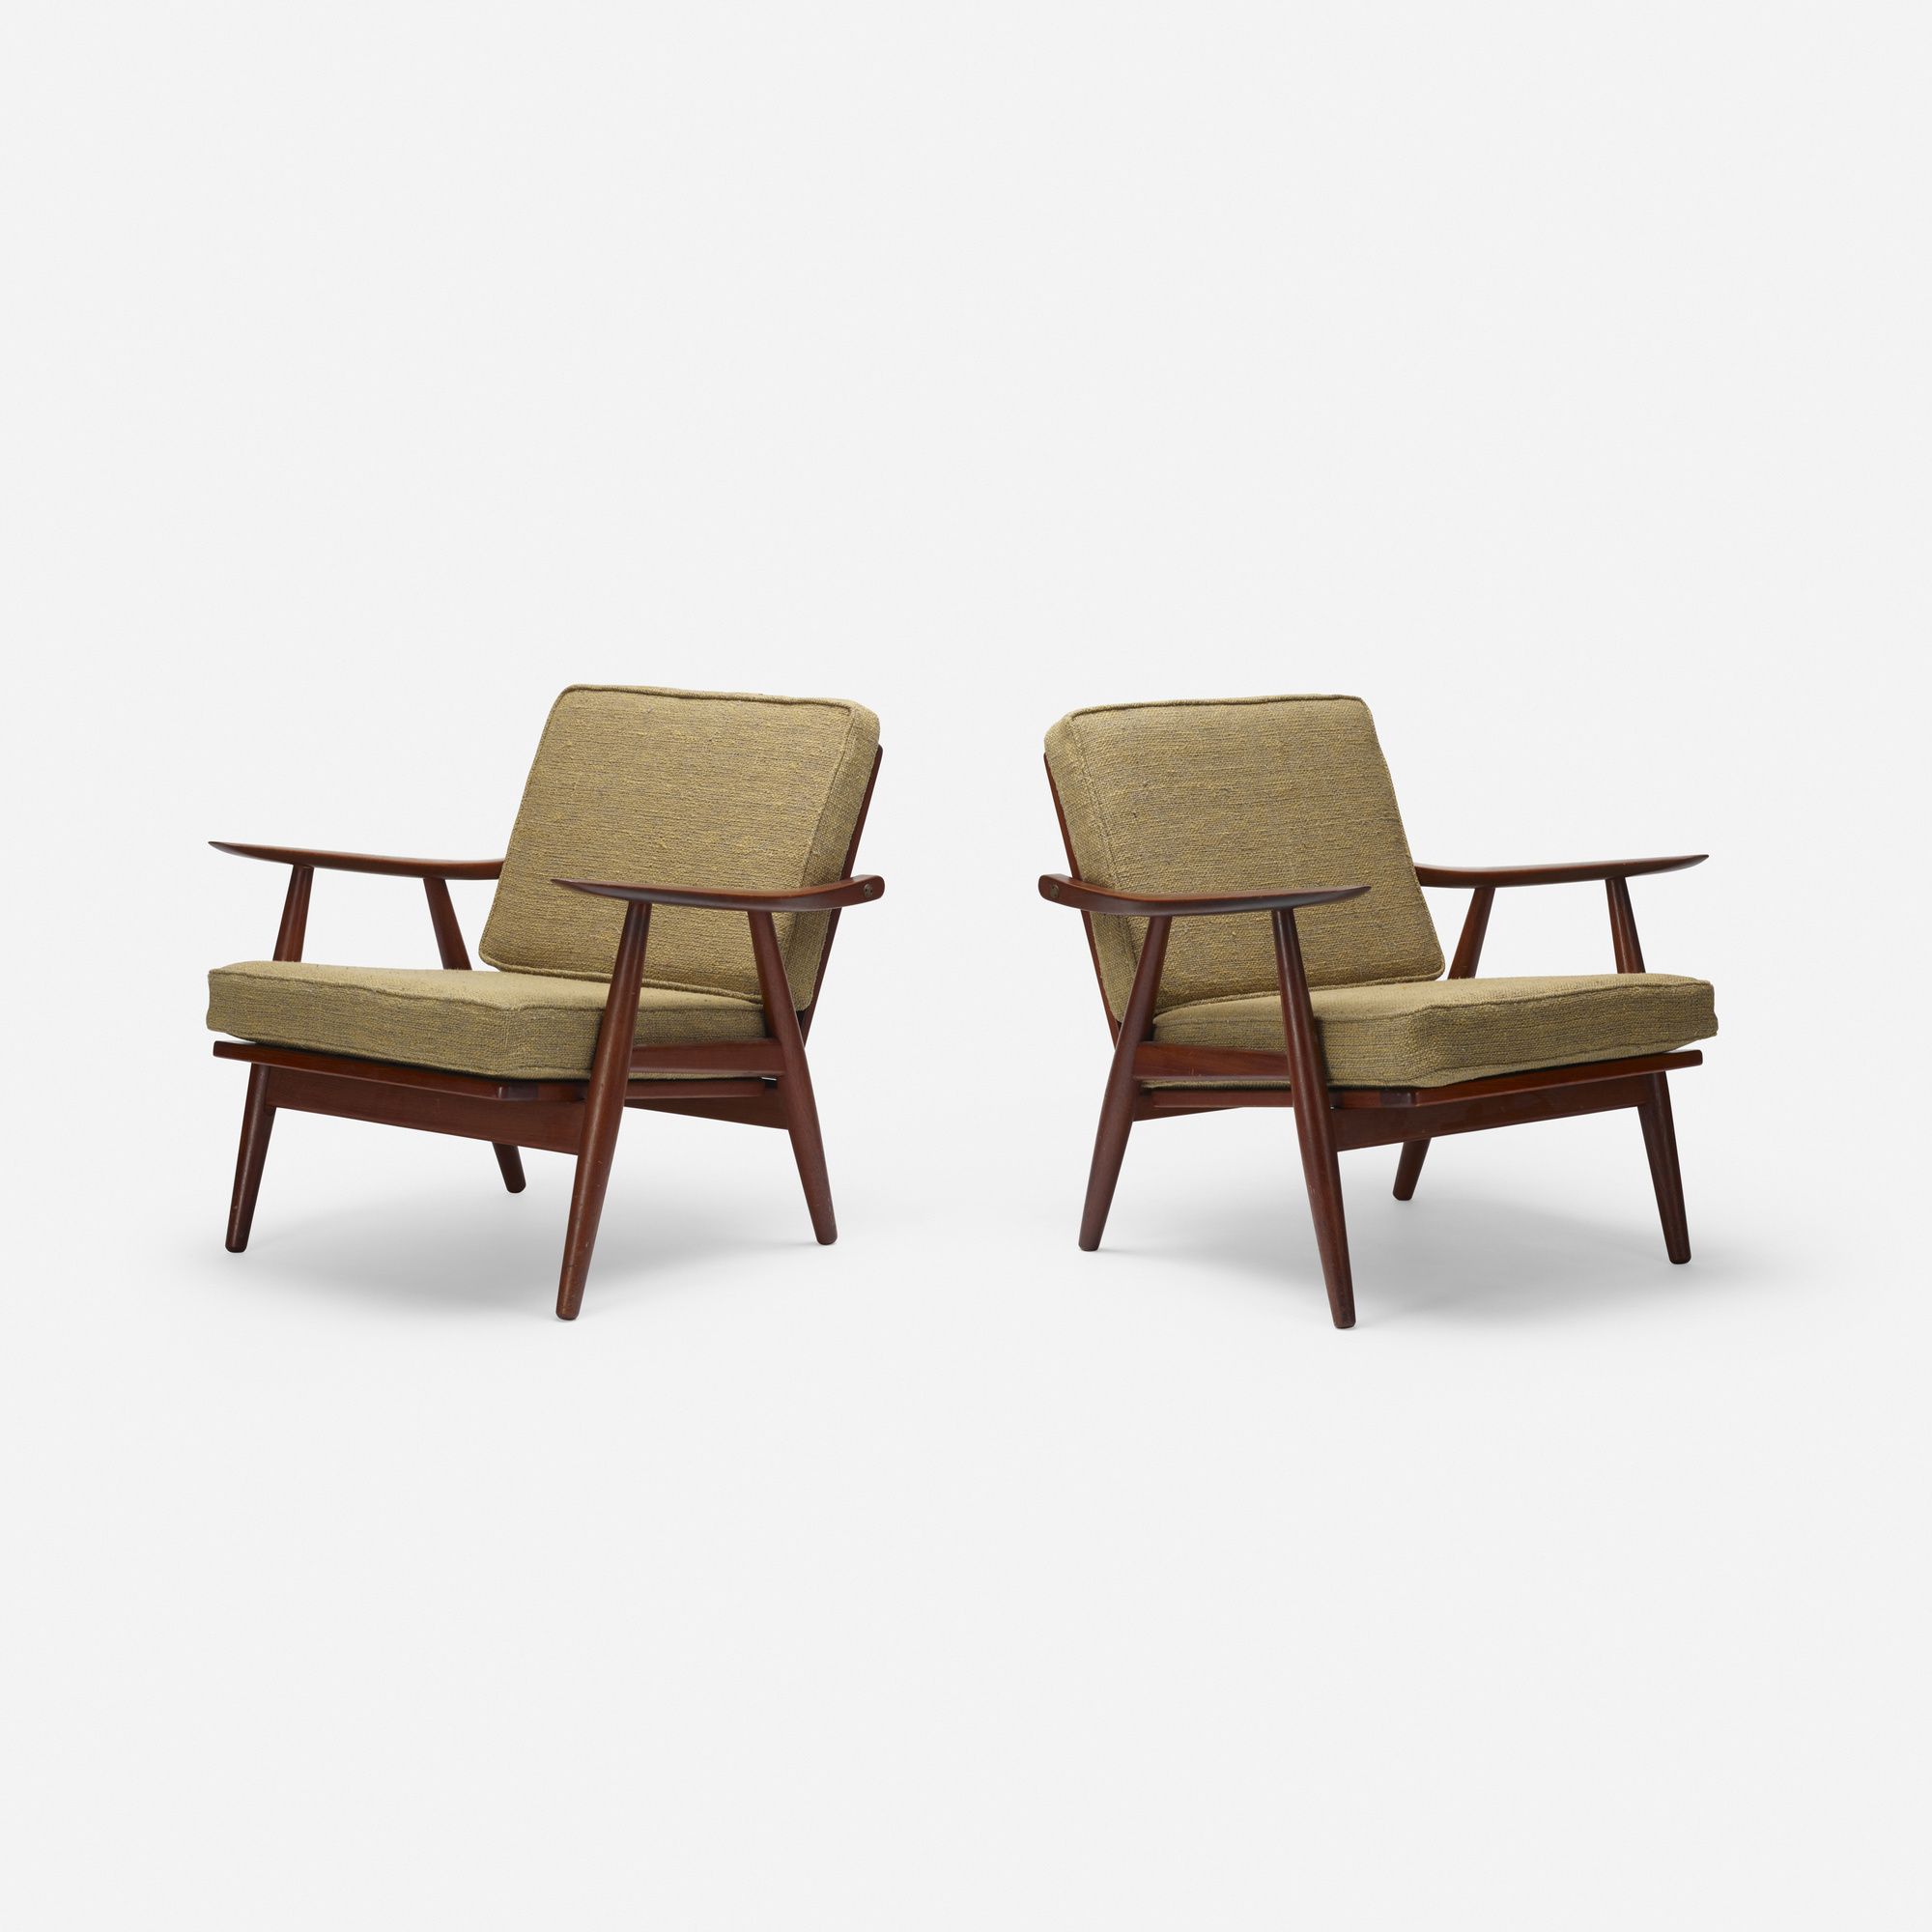 789: Hans J. Wegner / lounge chairs model GH240, pair (1 of 3)